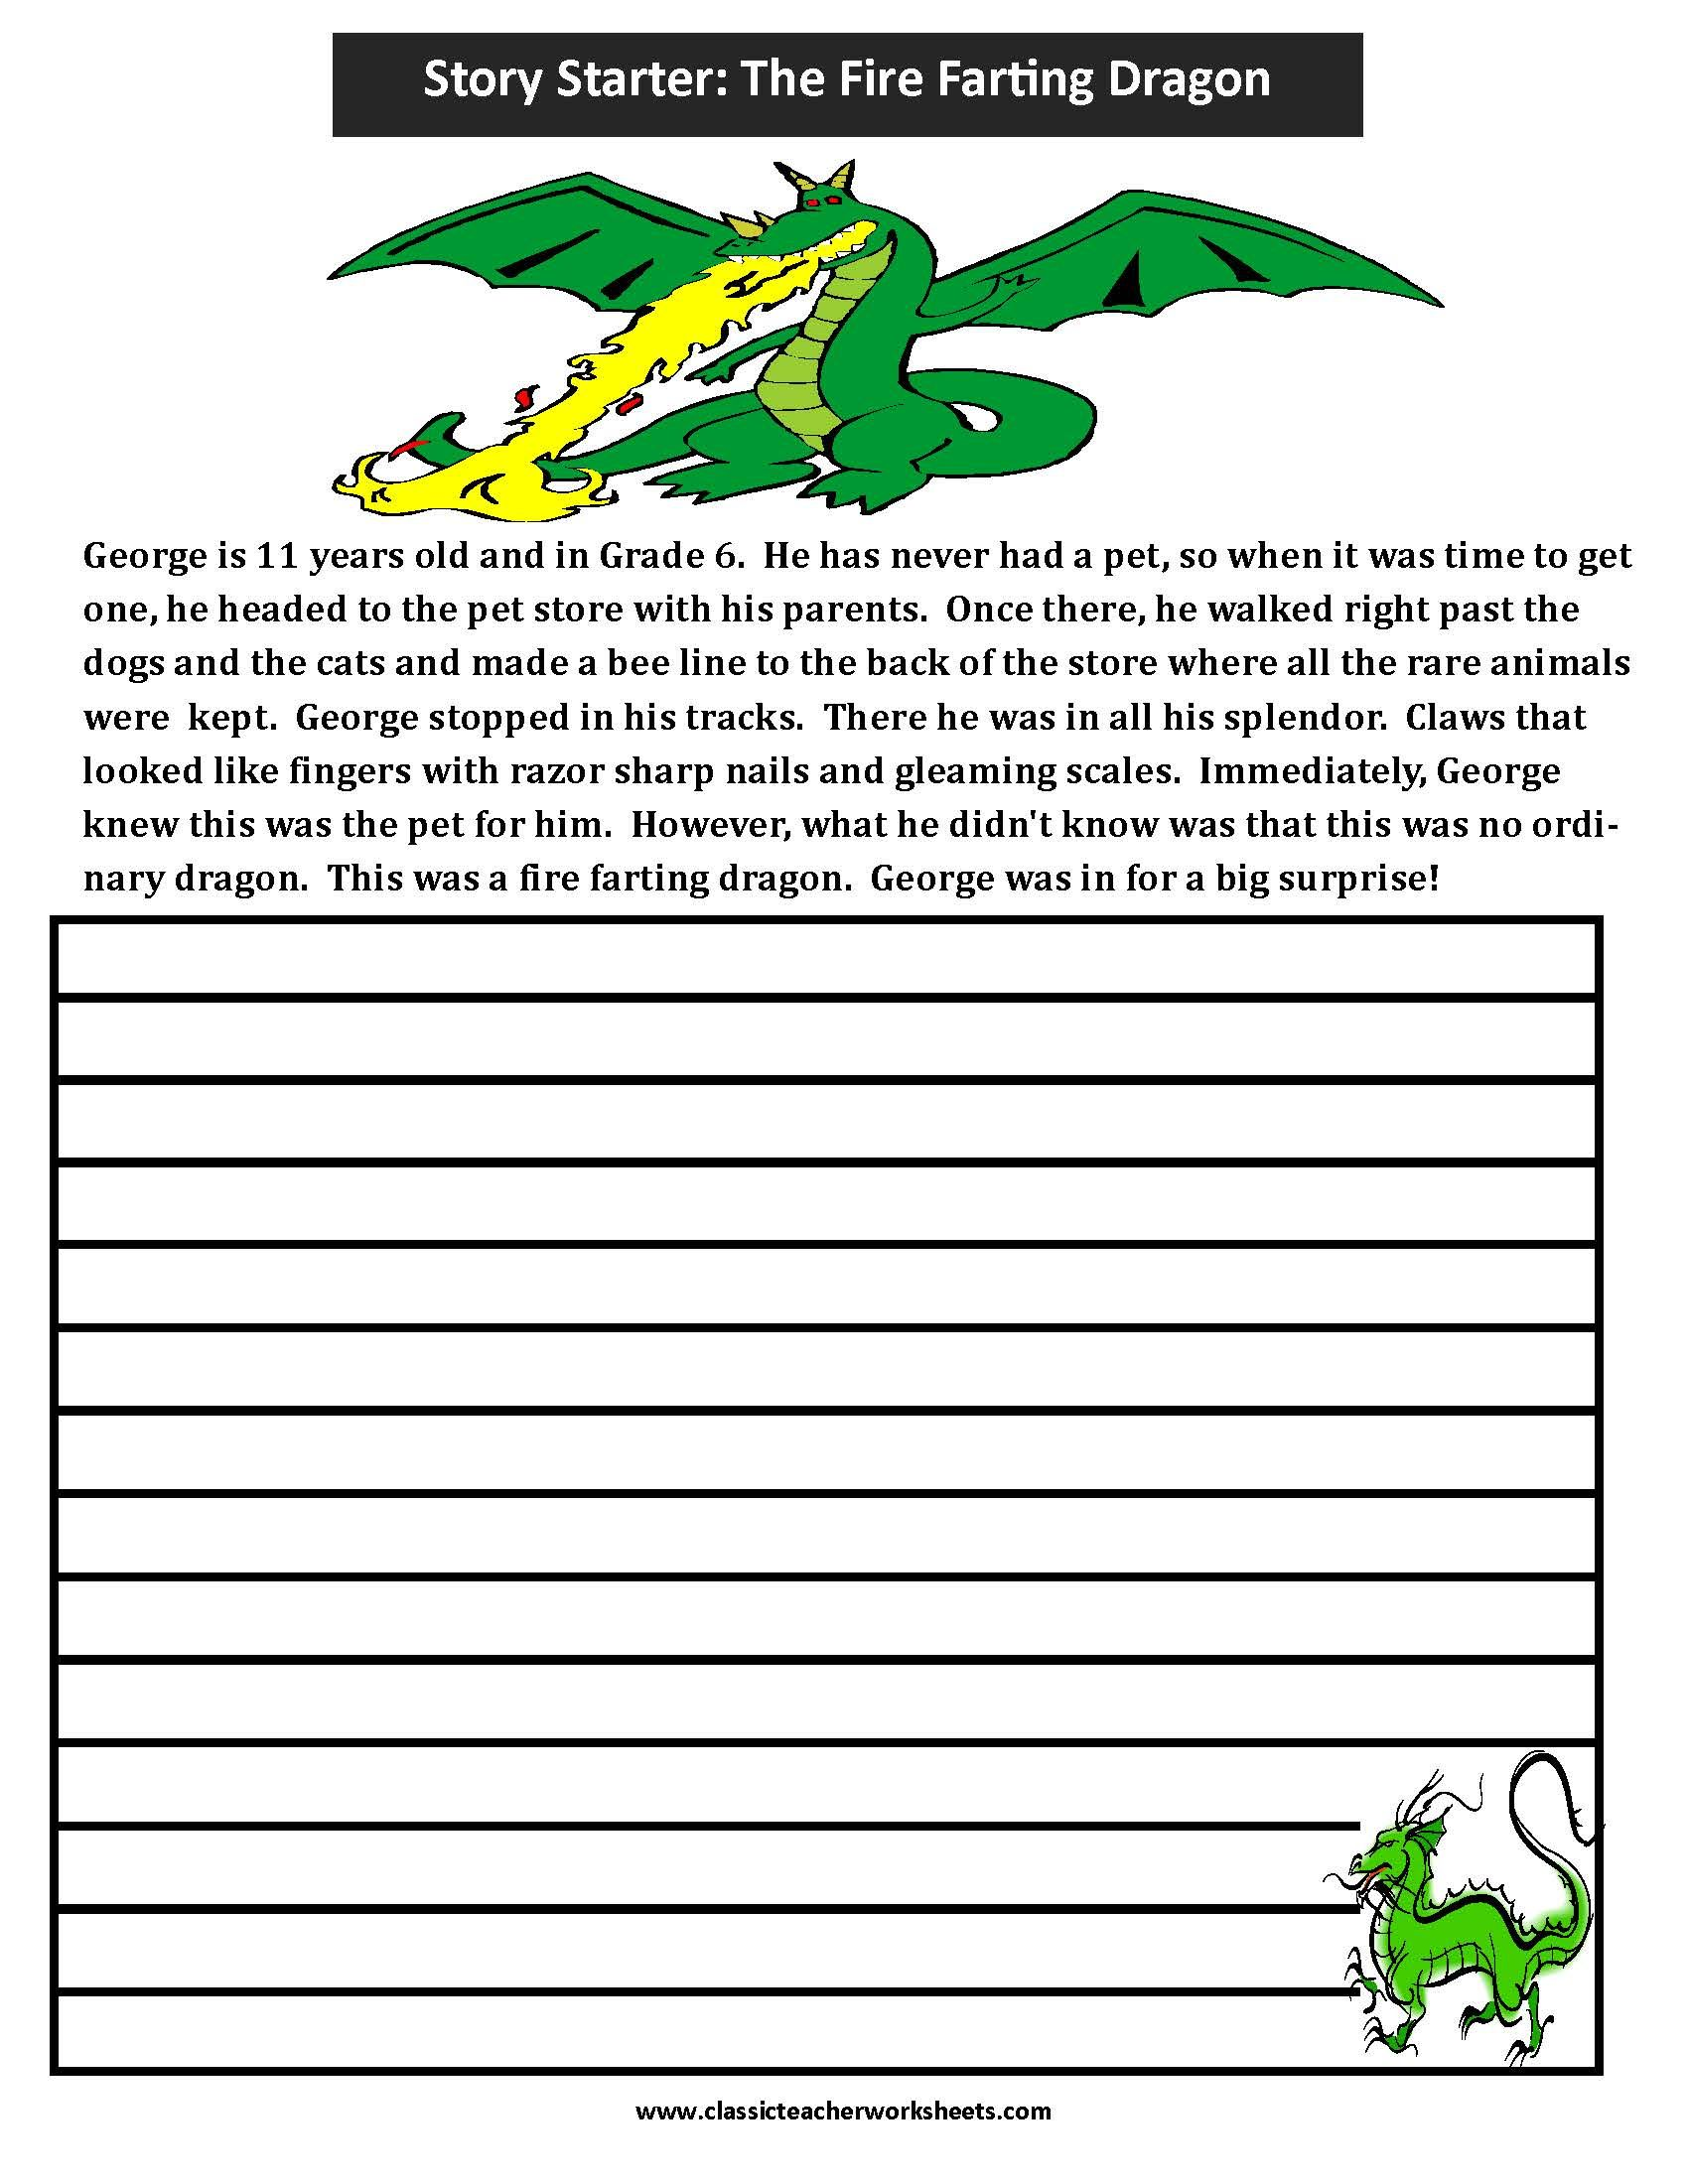 Check Out Our Collection Of Writing Worksheets At